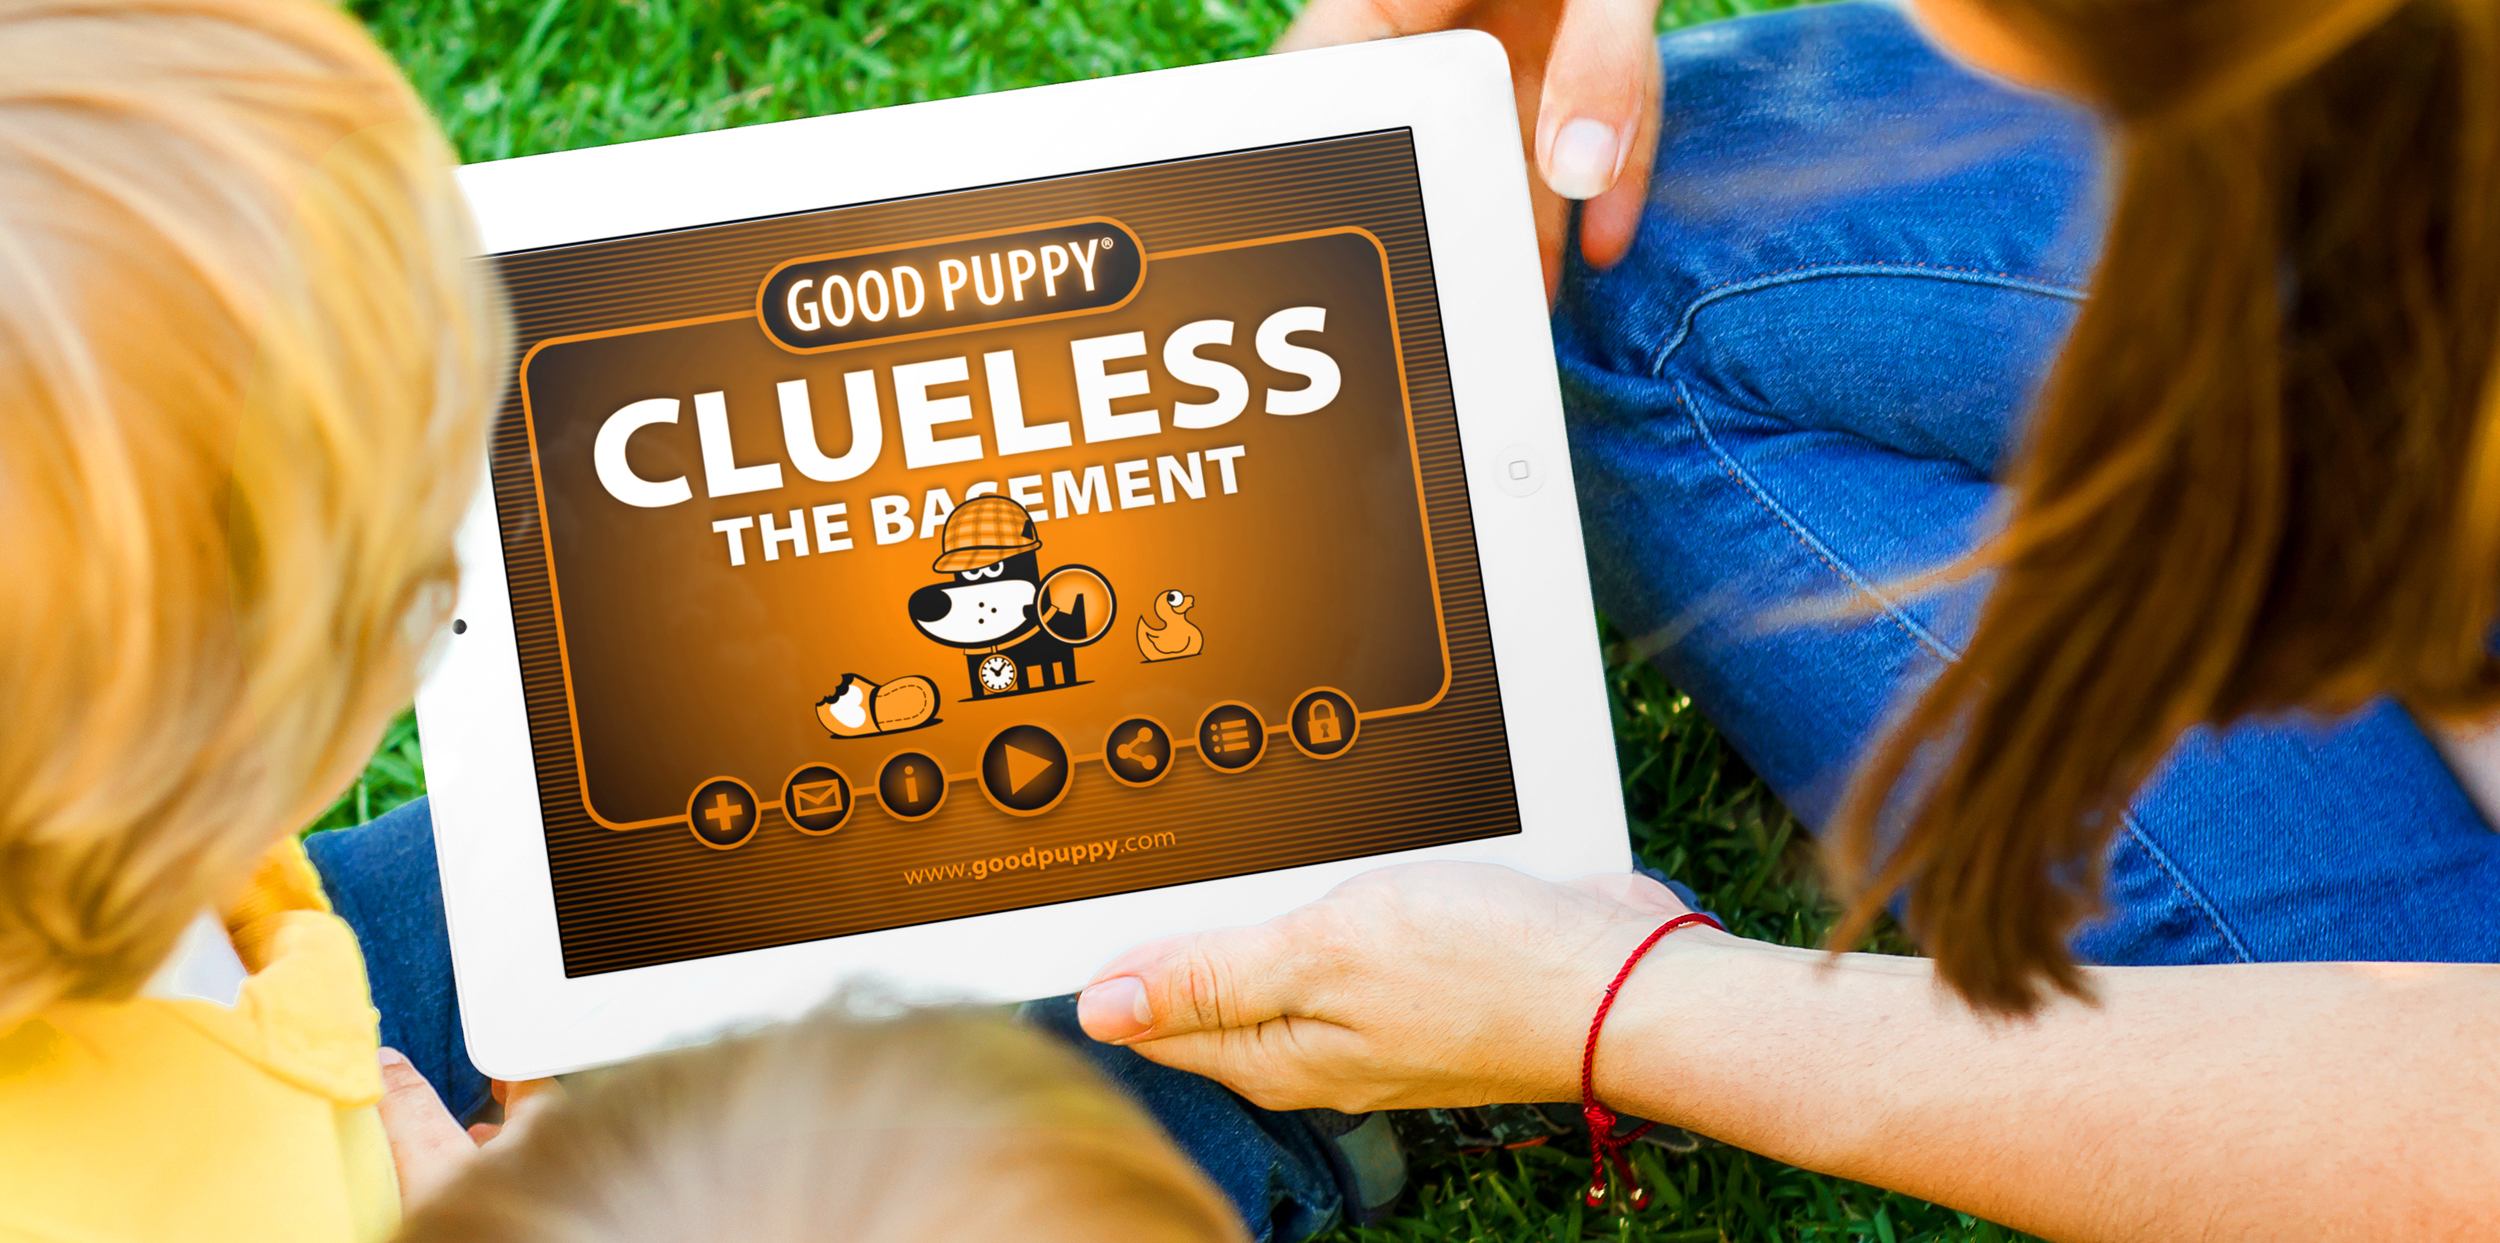 GOOD_PUPPY_Games-CLUELESS-Action_Adventure_Platform_Game-Puppy_Game-04.jpg